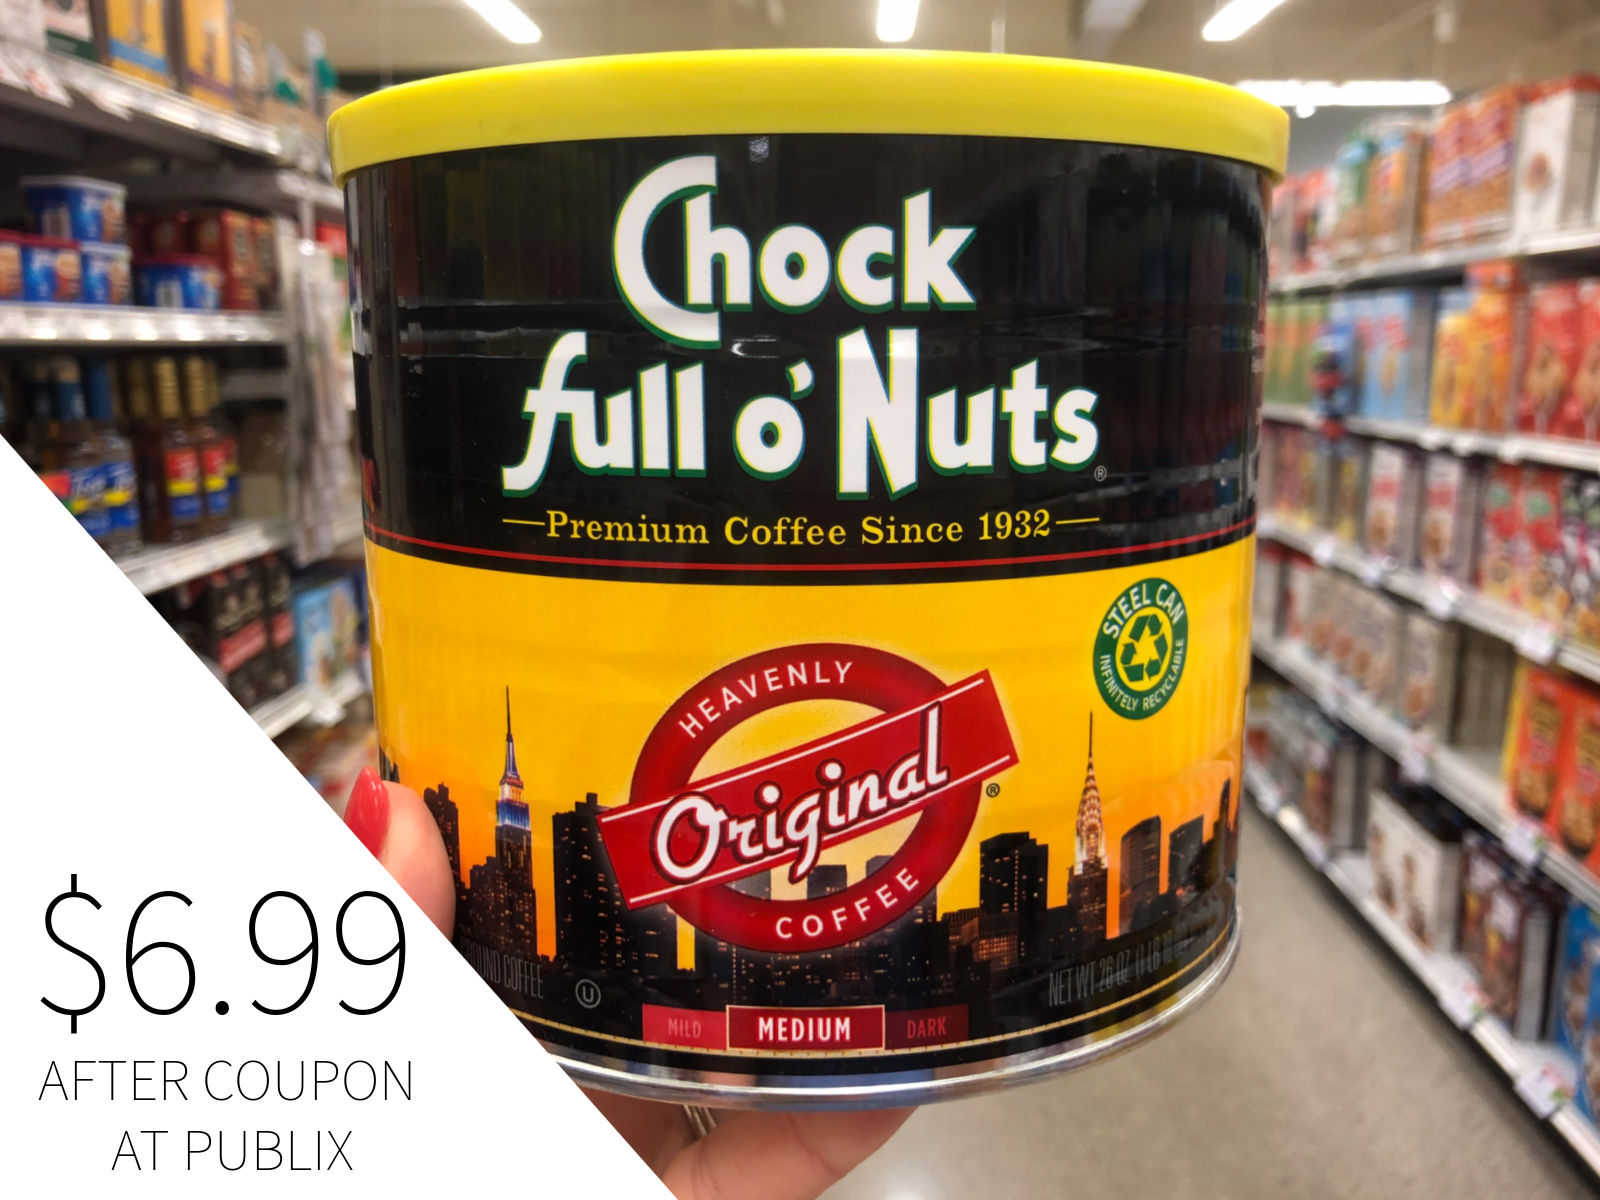 Save Big On Chock full o'Nuts® At Publix - $2 Coupon Valid Through 12/31 on I Heart Publix 5